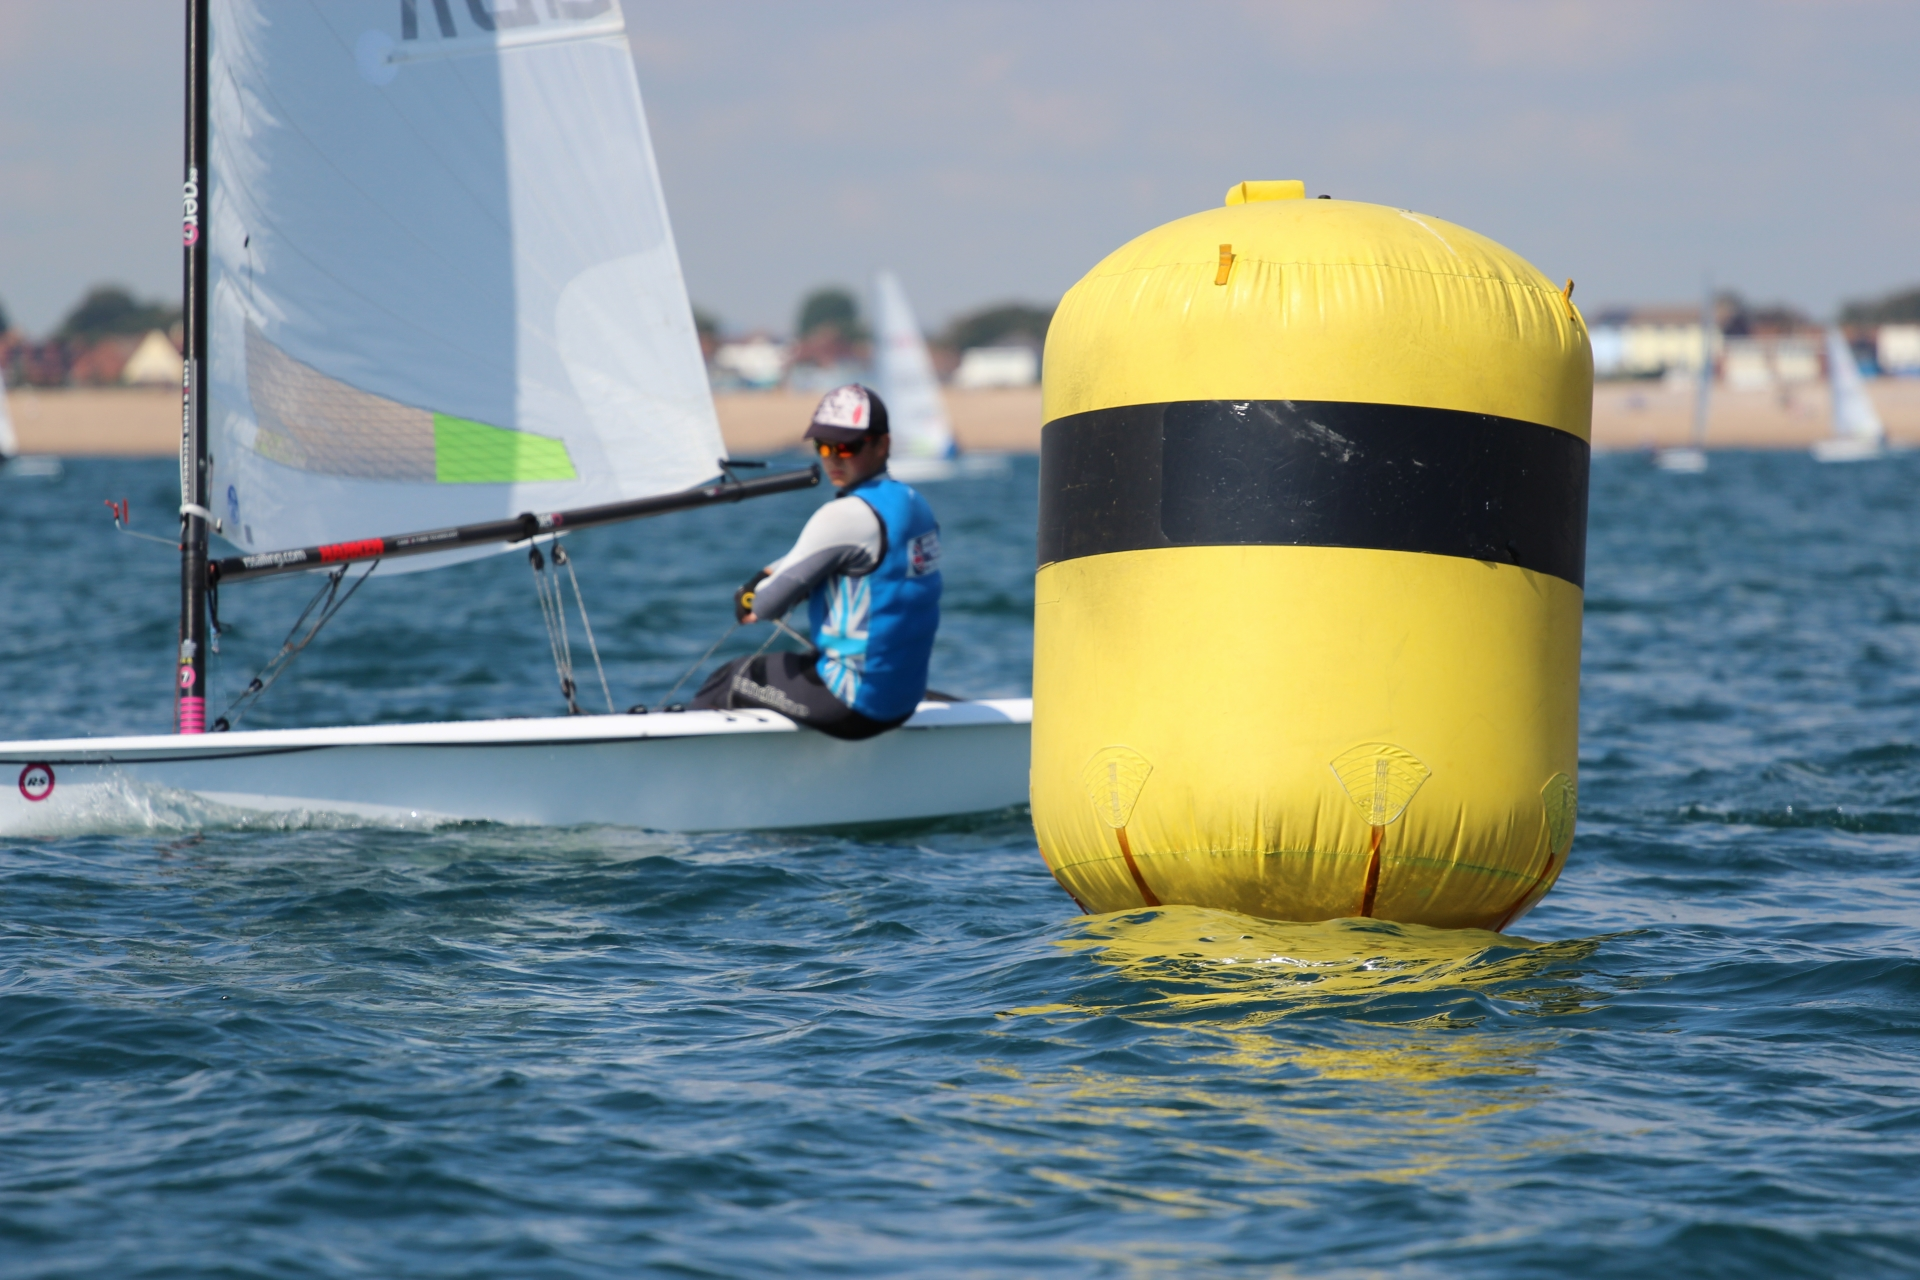 Here you can see me really looking upwind trying to find where the most wind is, where it will be and how I can best make use of it as I approach the windward mark.